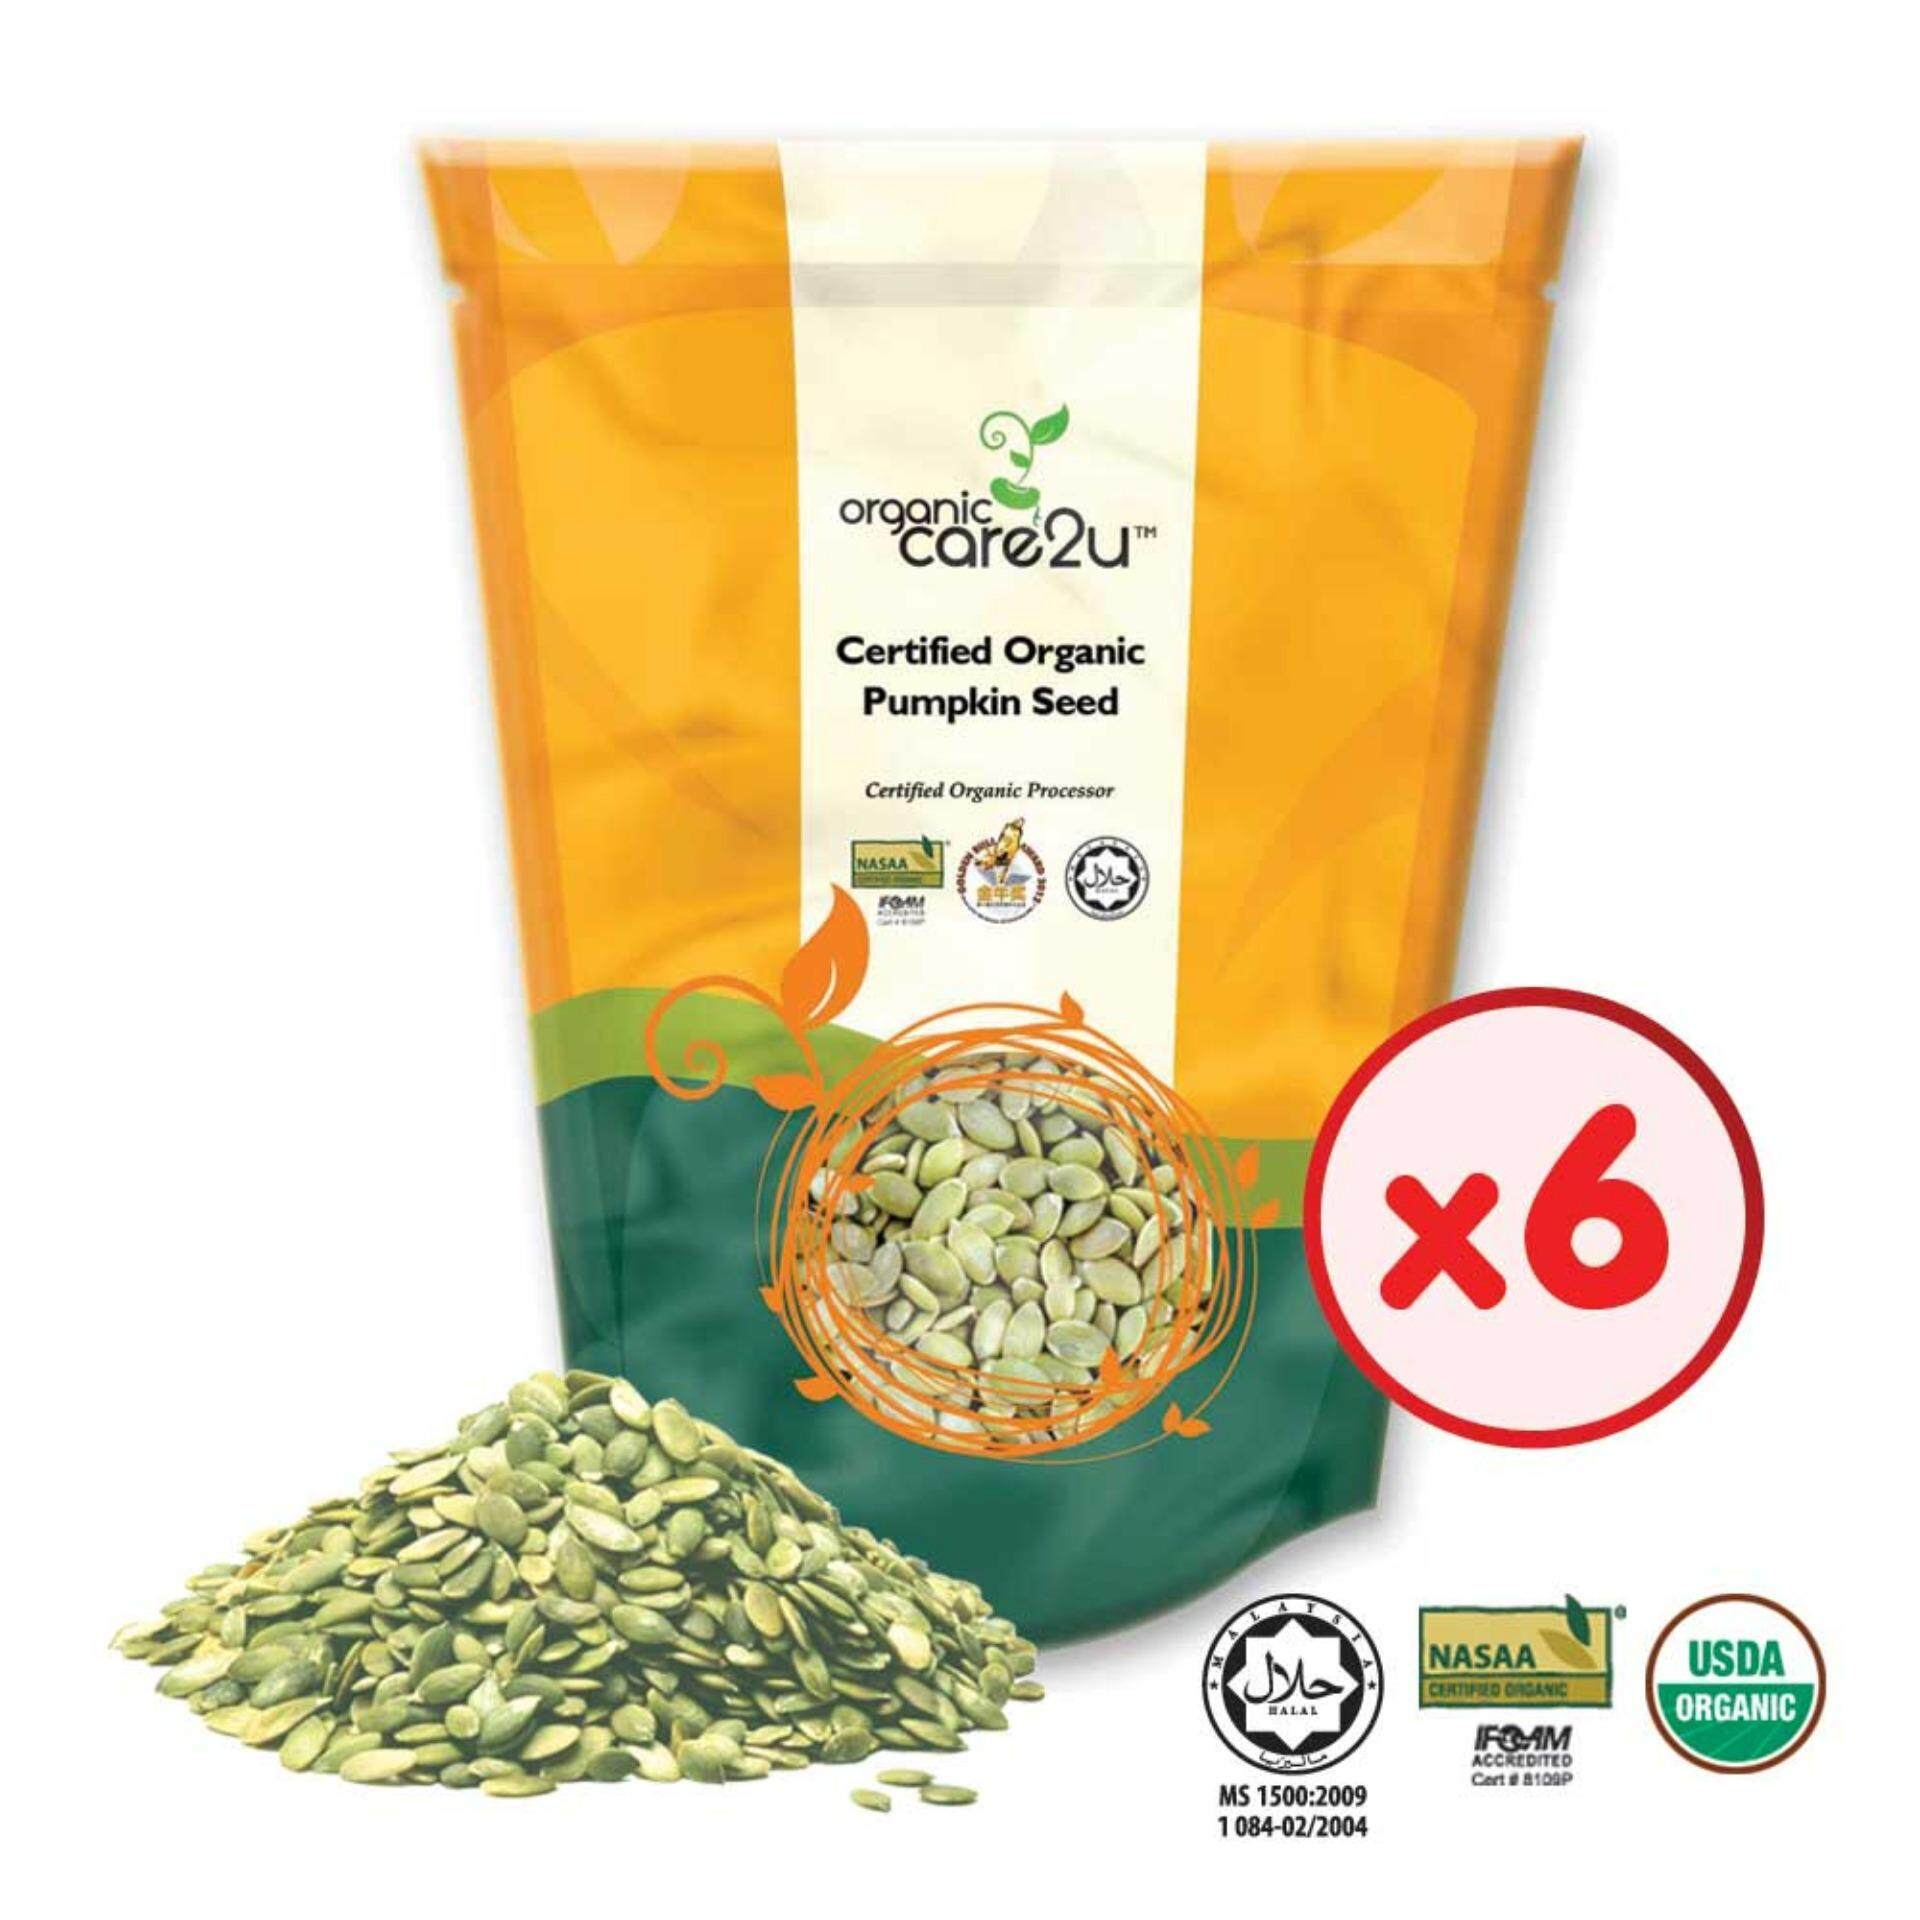 Organic Care2u Organic Pumpkin Seed (180g) - [Bundle of 6]